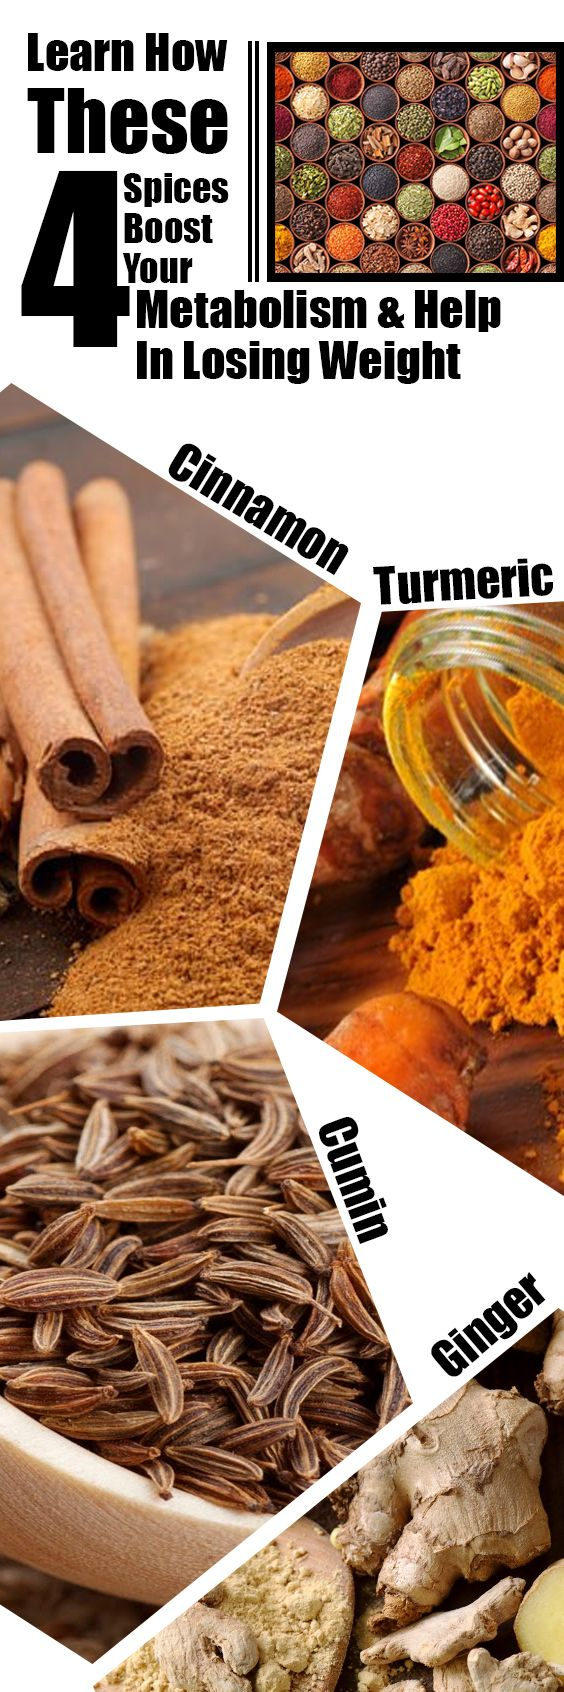 Bodymate herbal loss product weight - Learn How These 4 Spices Boost Your Metabolism Help In Losing Weight